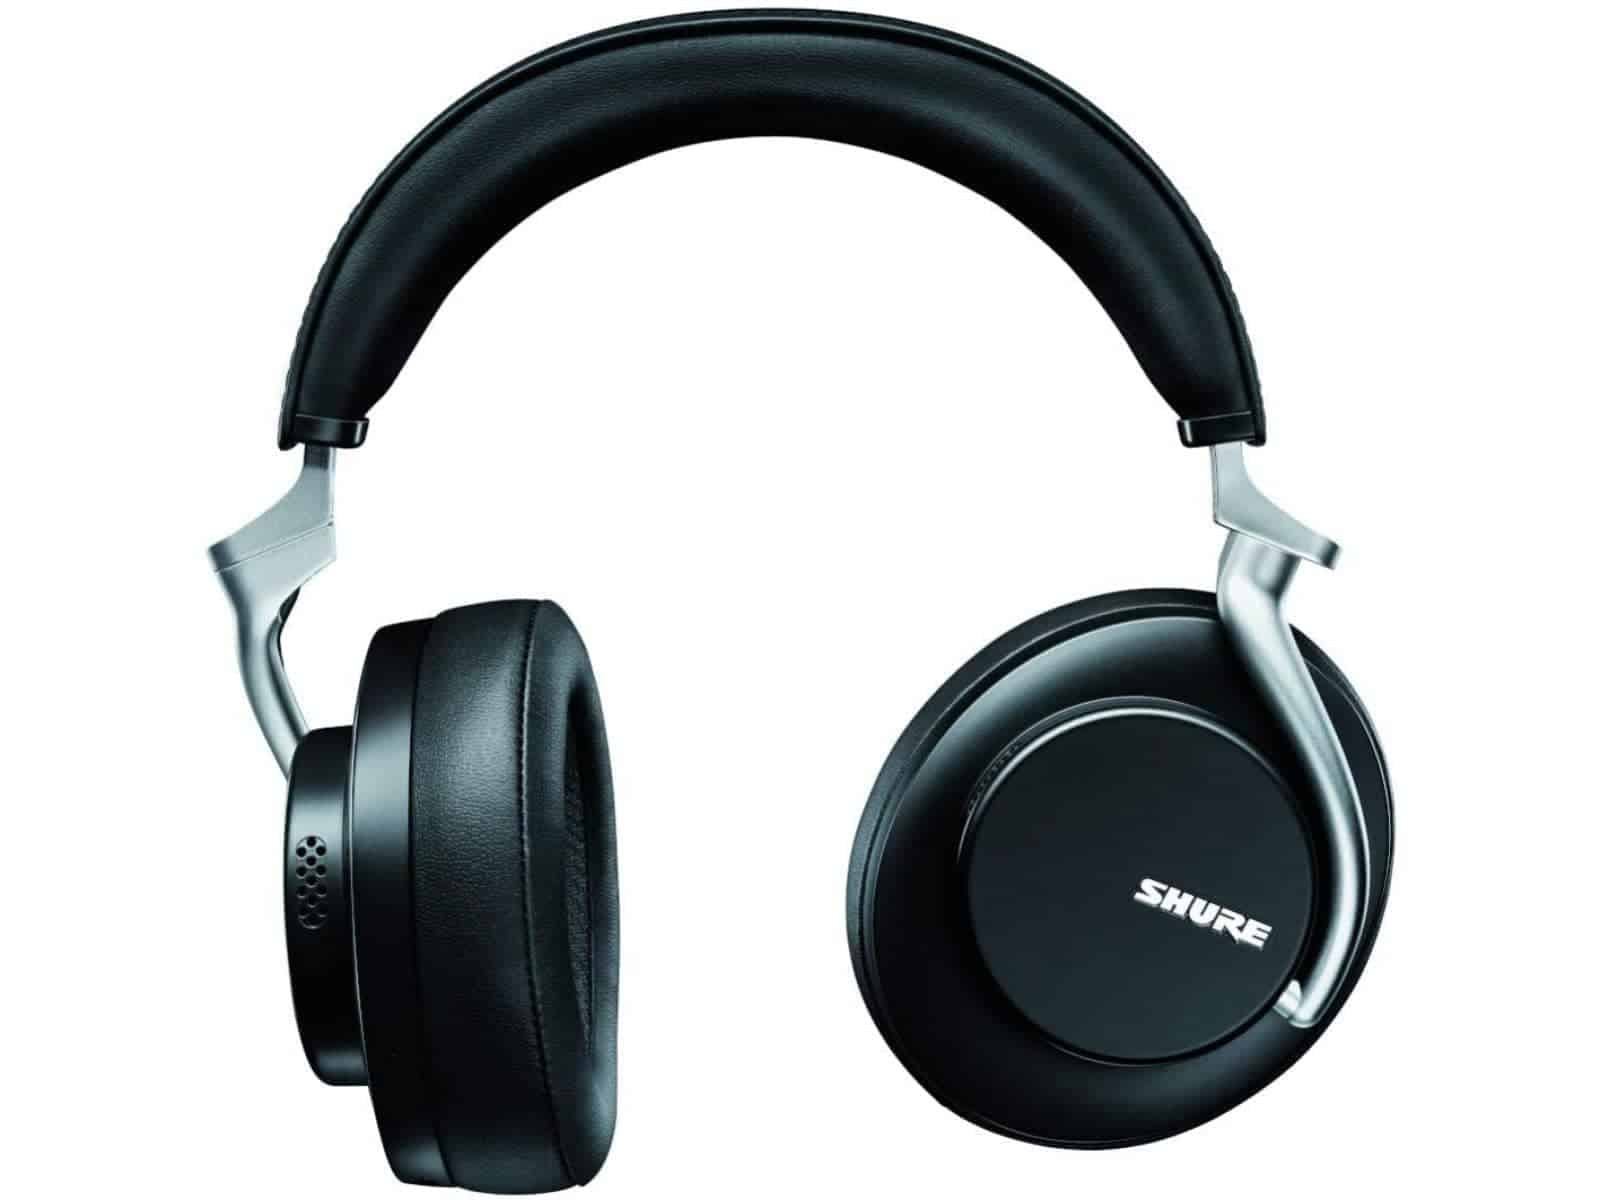 Shure AONIC 50 presser from Amazon